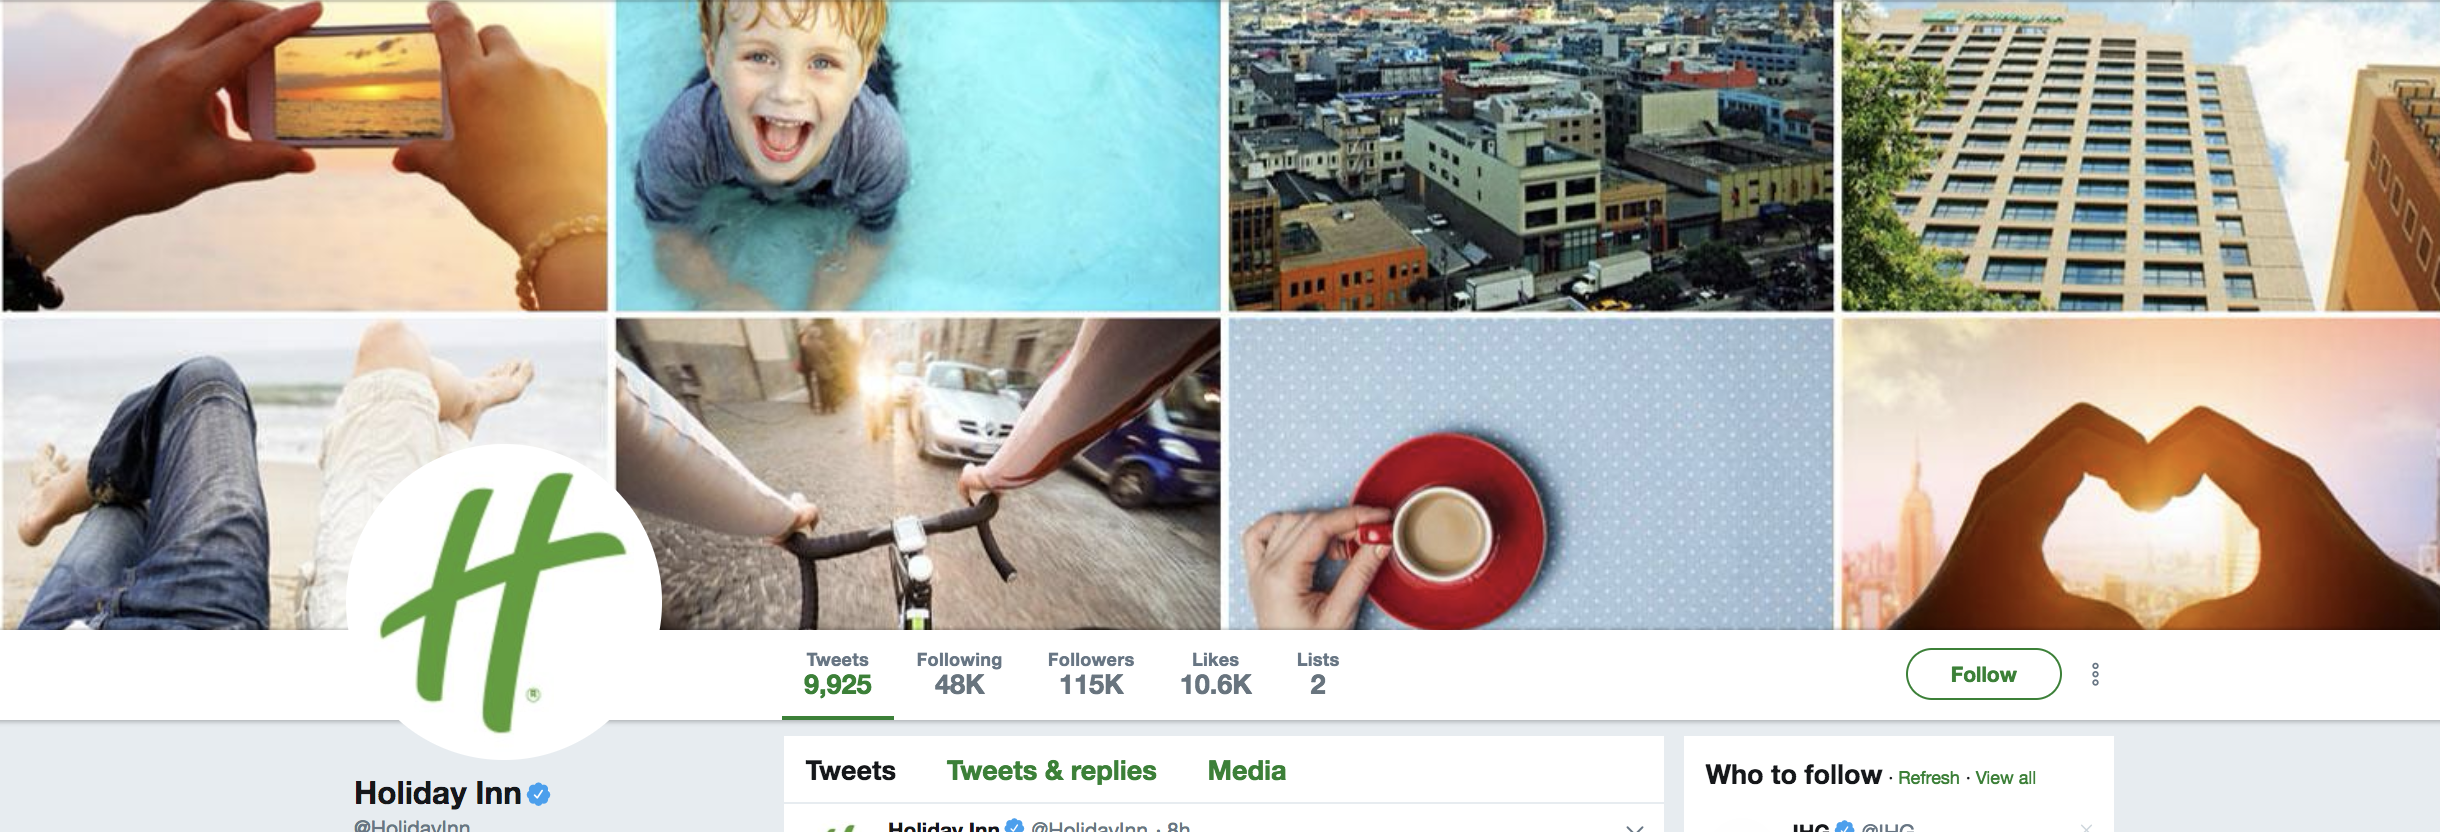 Twitter-header-example-collage